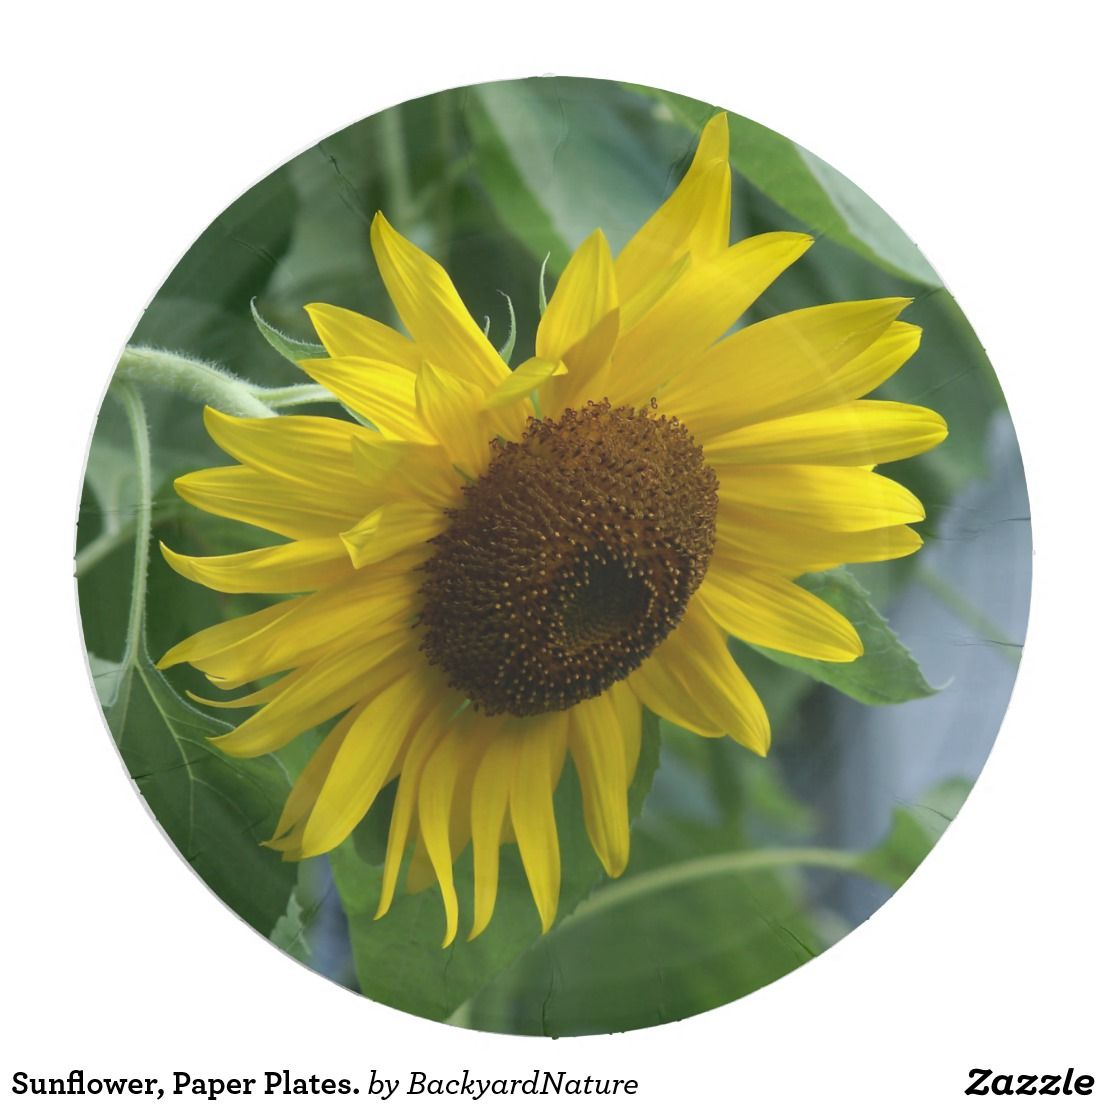 Sunflower, Paper Plates. Paper Plate | Nature internet shopping ...